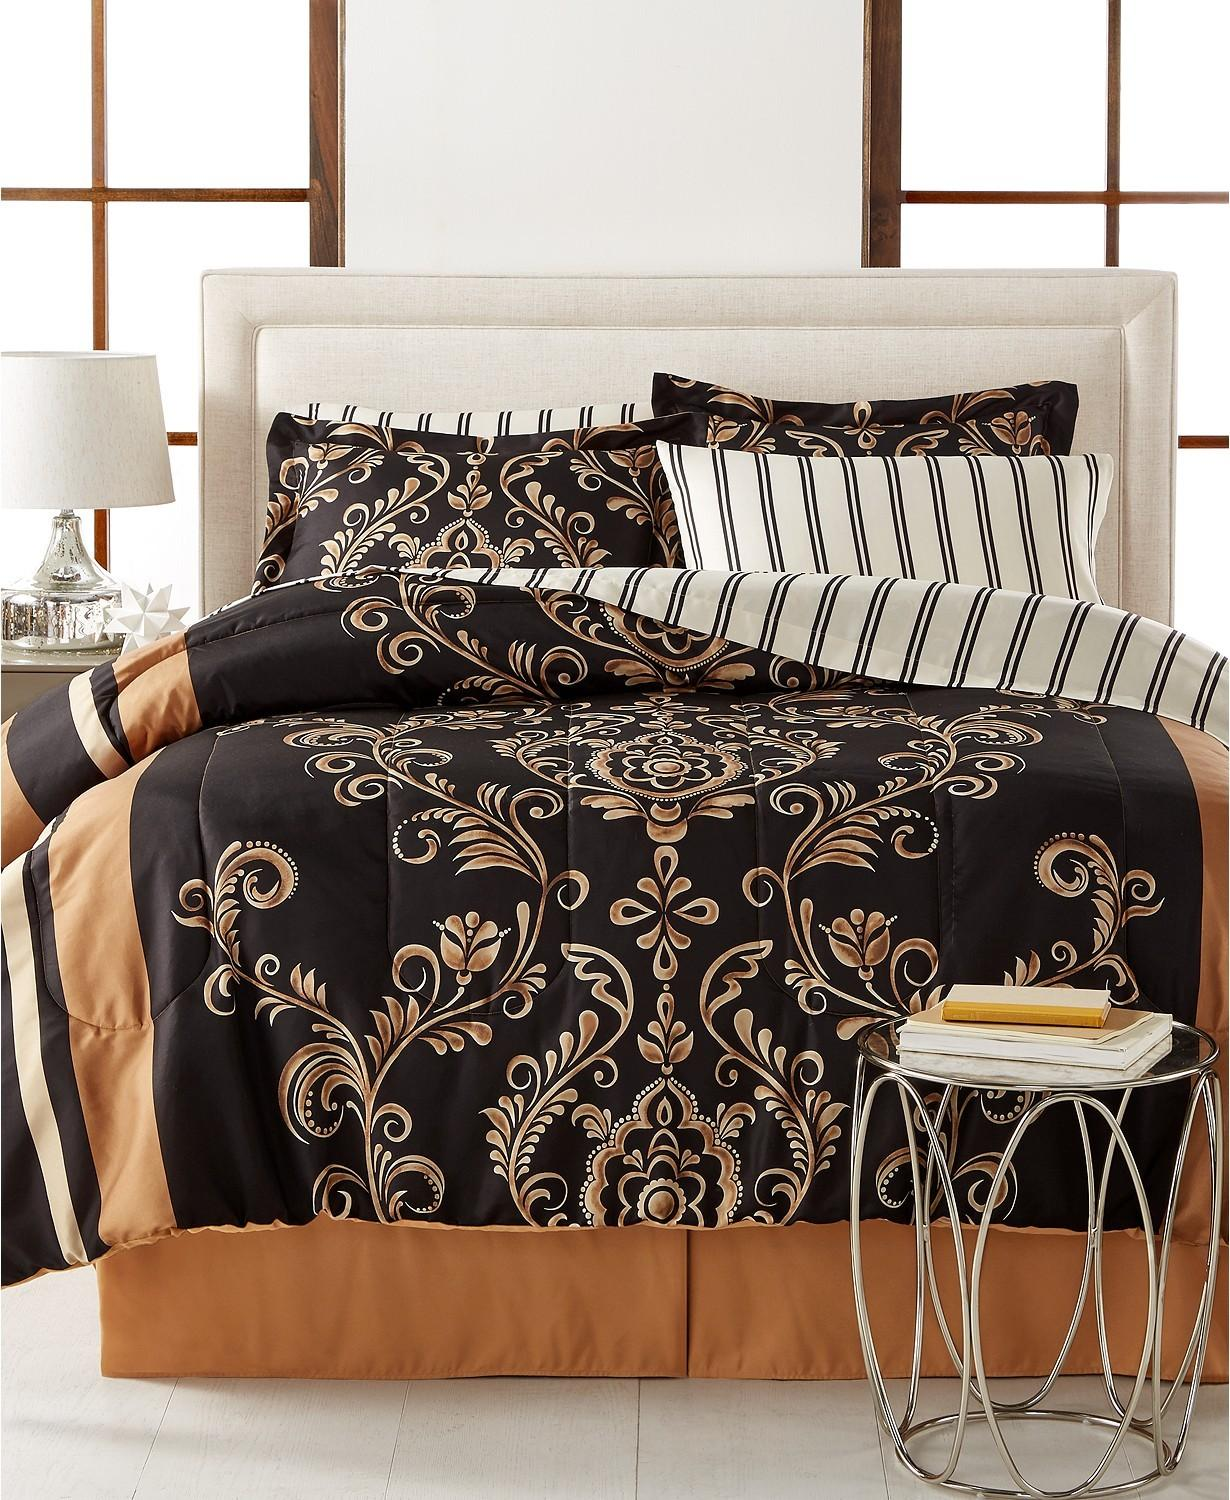 8-Piece Reversible Comforter Sets (Full, Queen, King or Cal King)